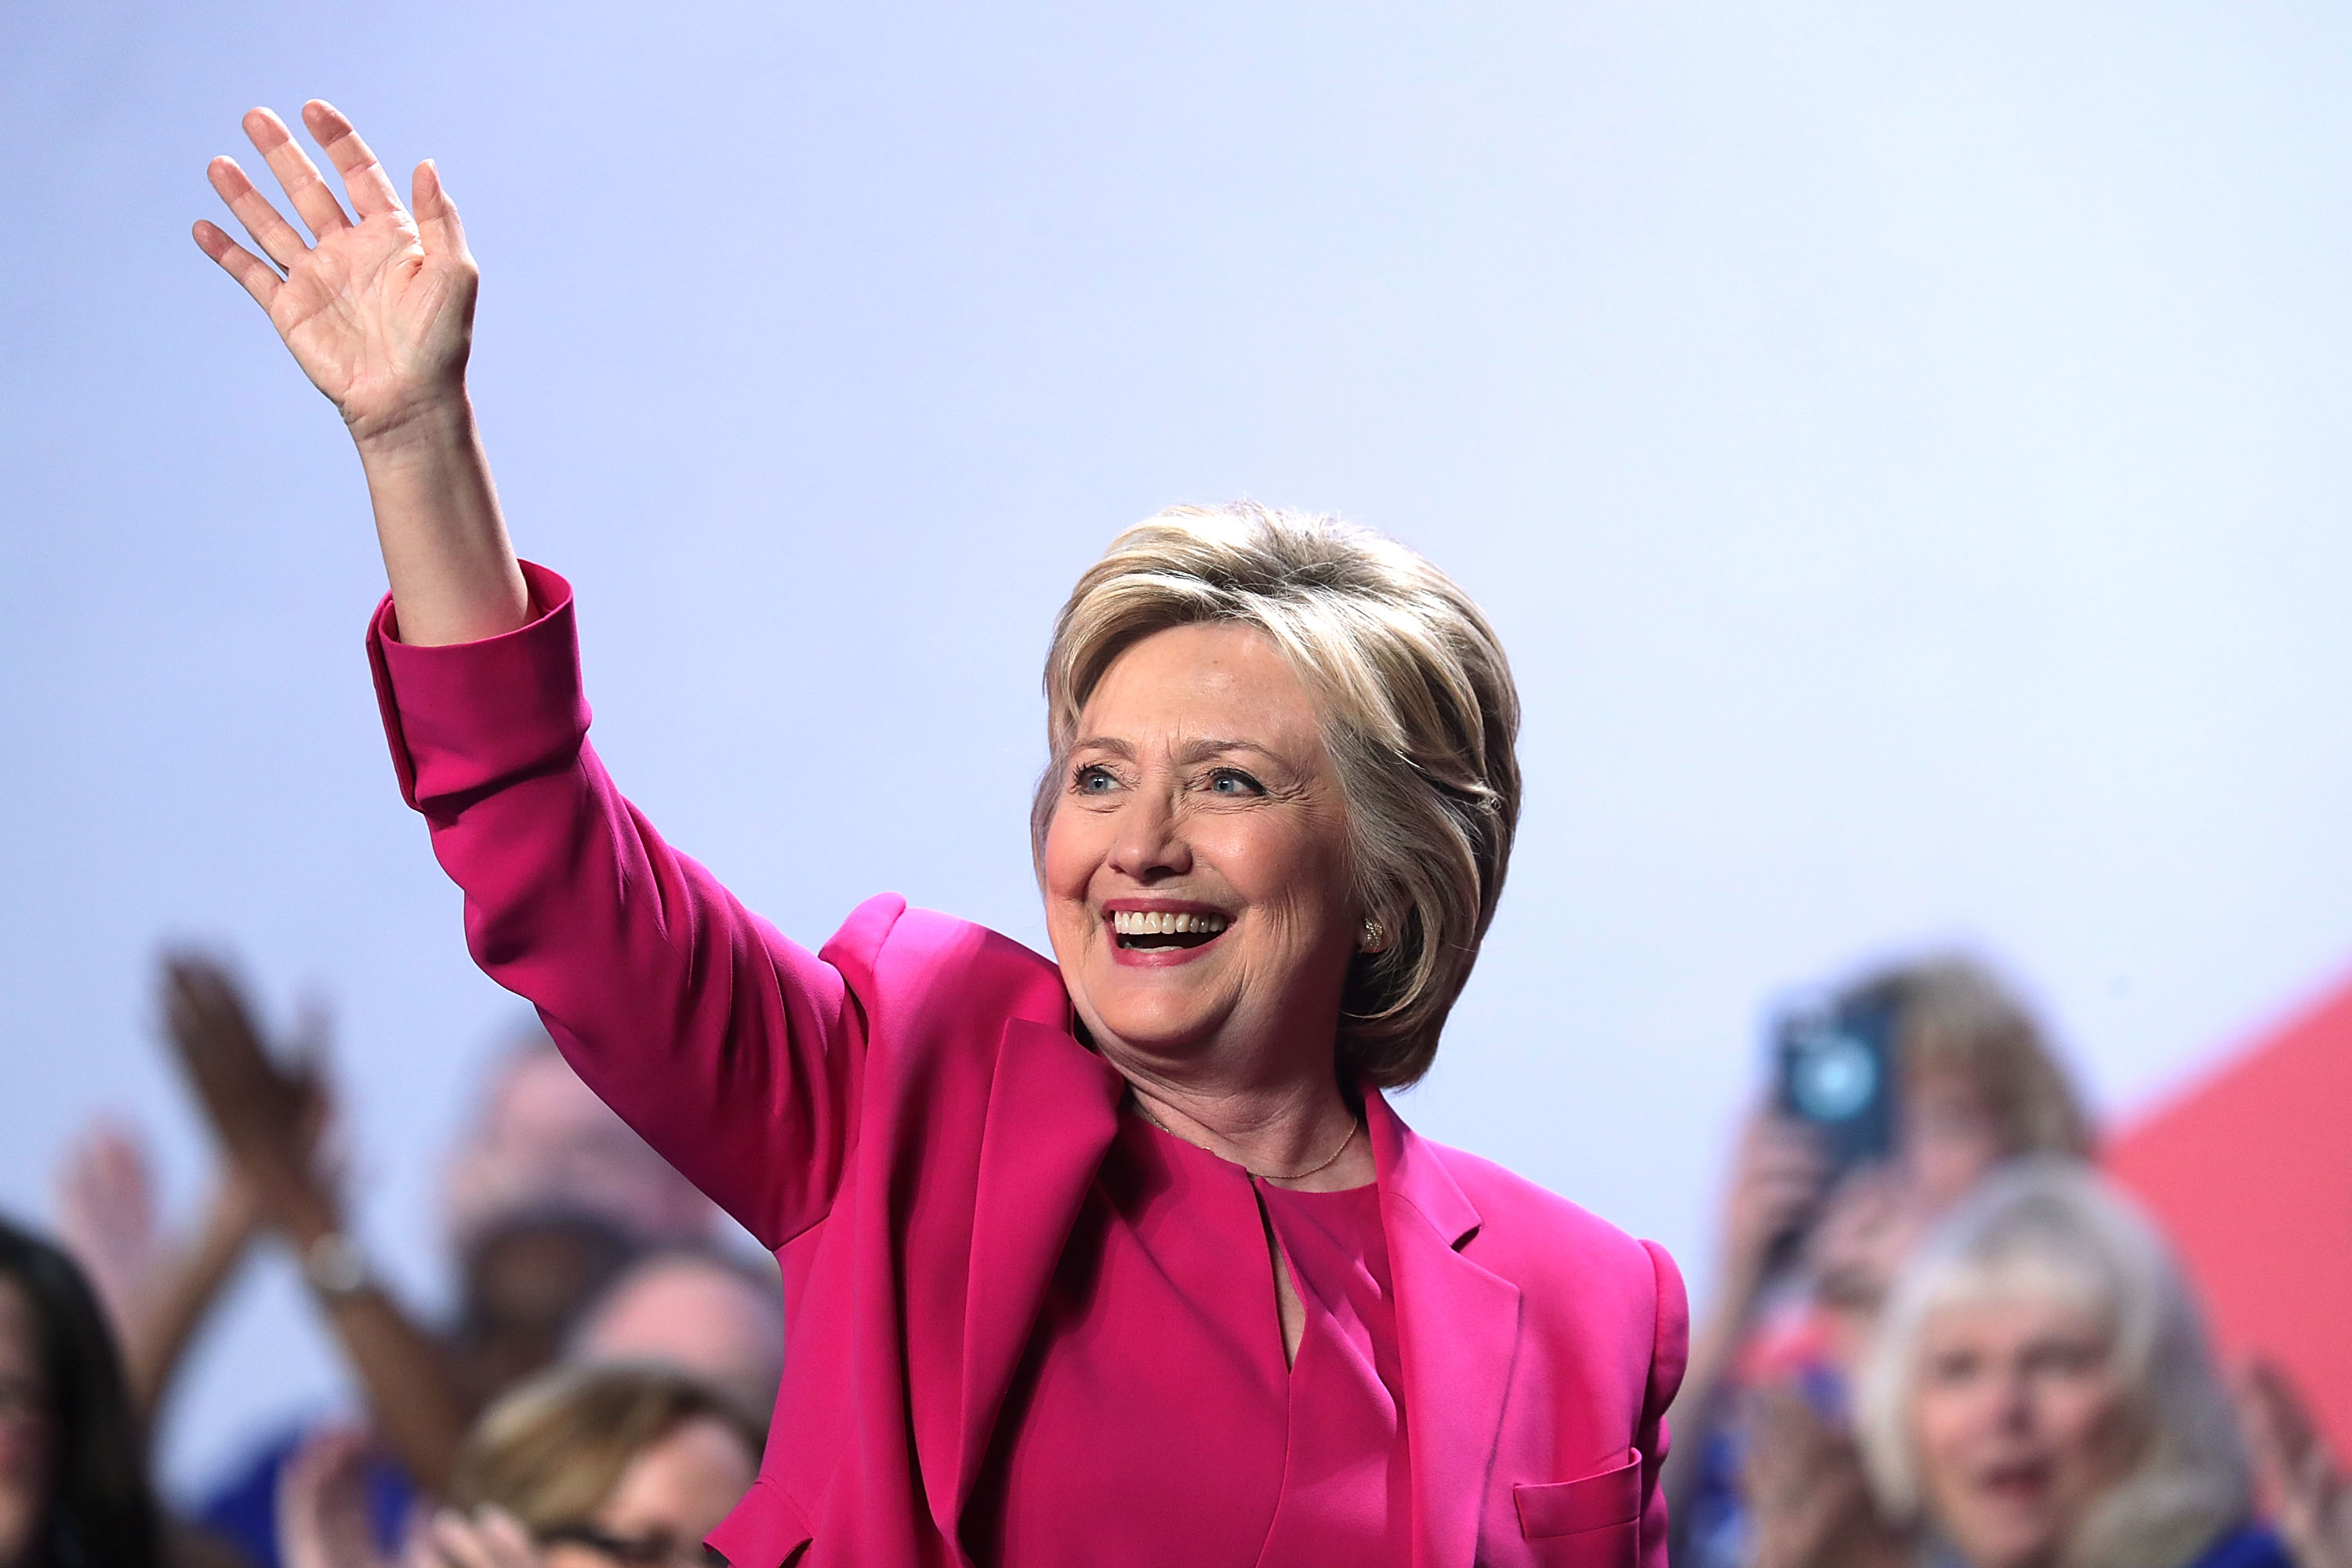 Democratic presidential candidate Hillary Rodham Clinton waves after she addressed the 95th Representative Assembly of the National Education Association on July 5, 2016 in Washington, DC.